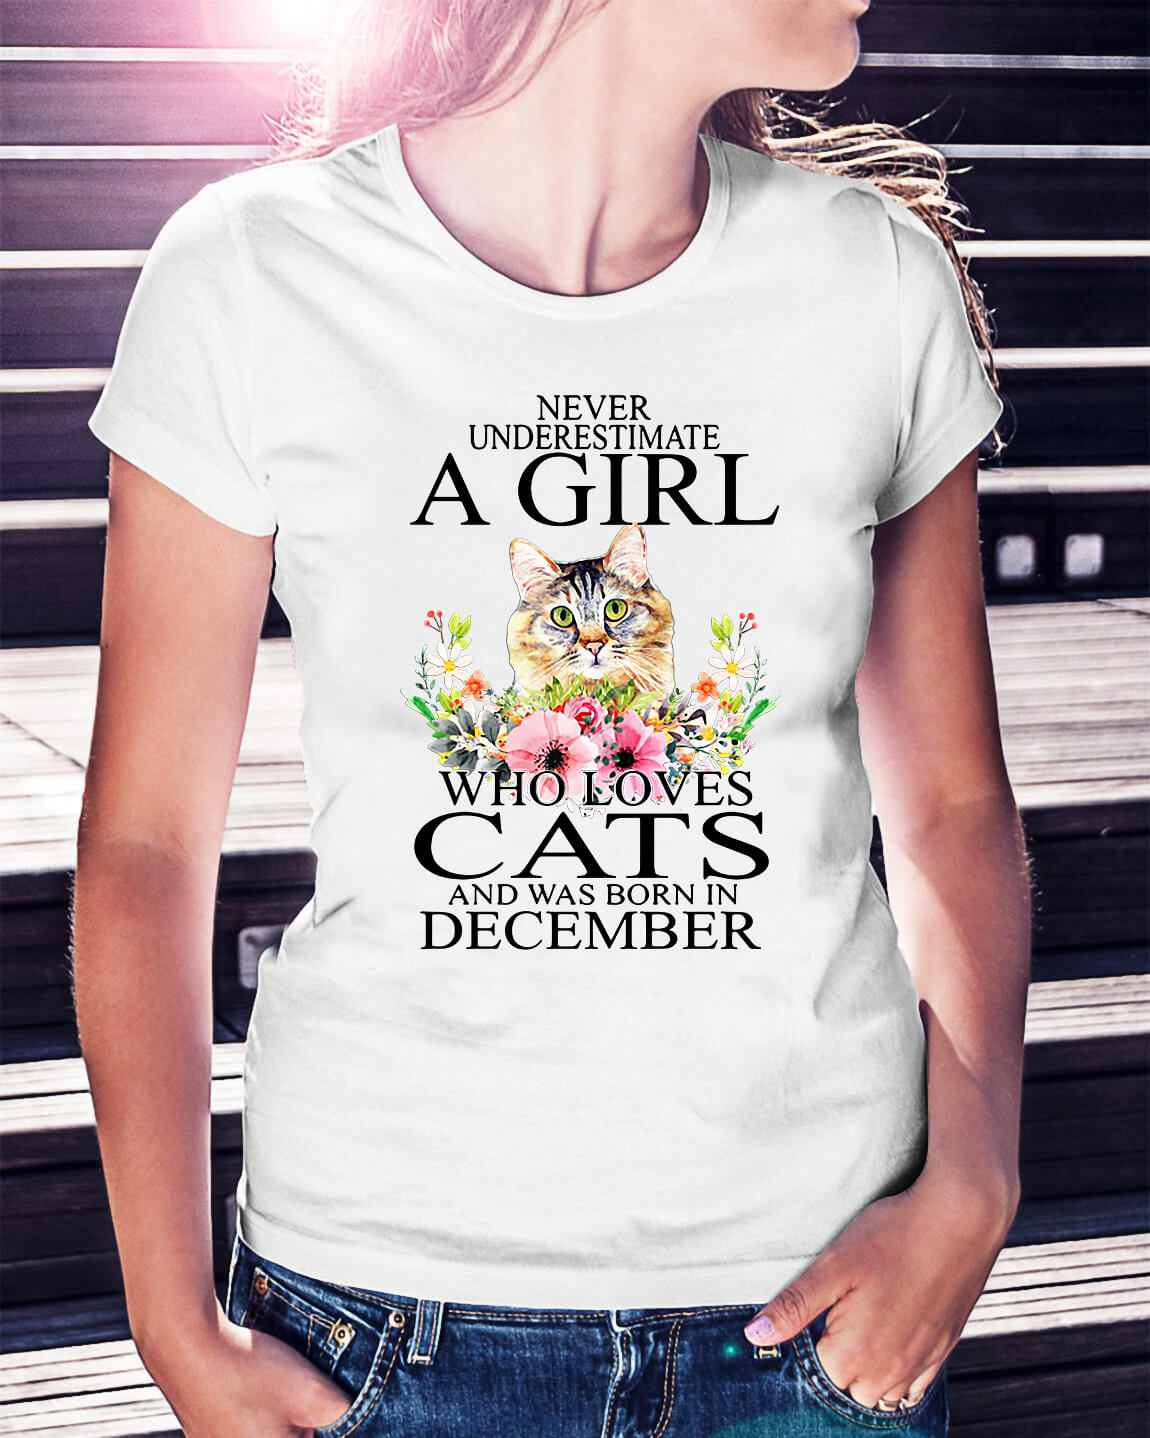 c97f7b91 Never underestimate a girl who loves cats and was born in December shirt